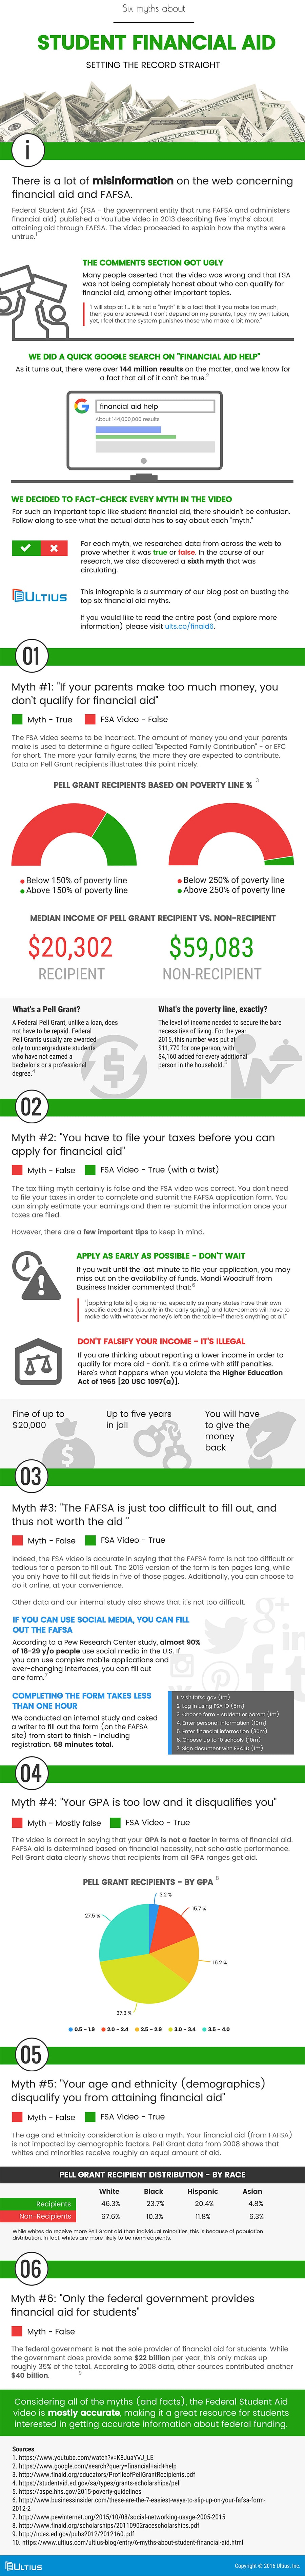 6 Myths About Student Financial Aid - An Infographic